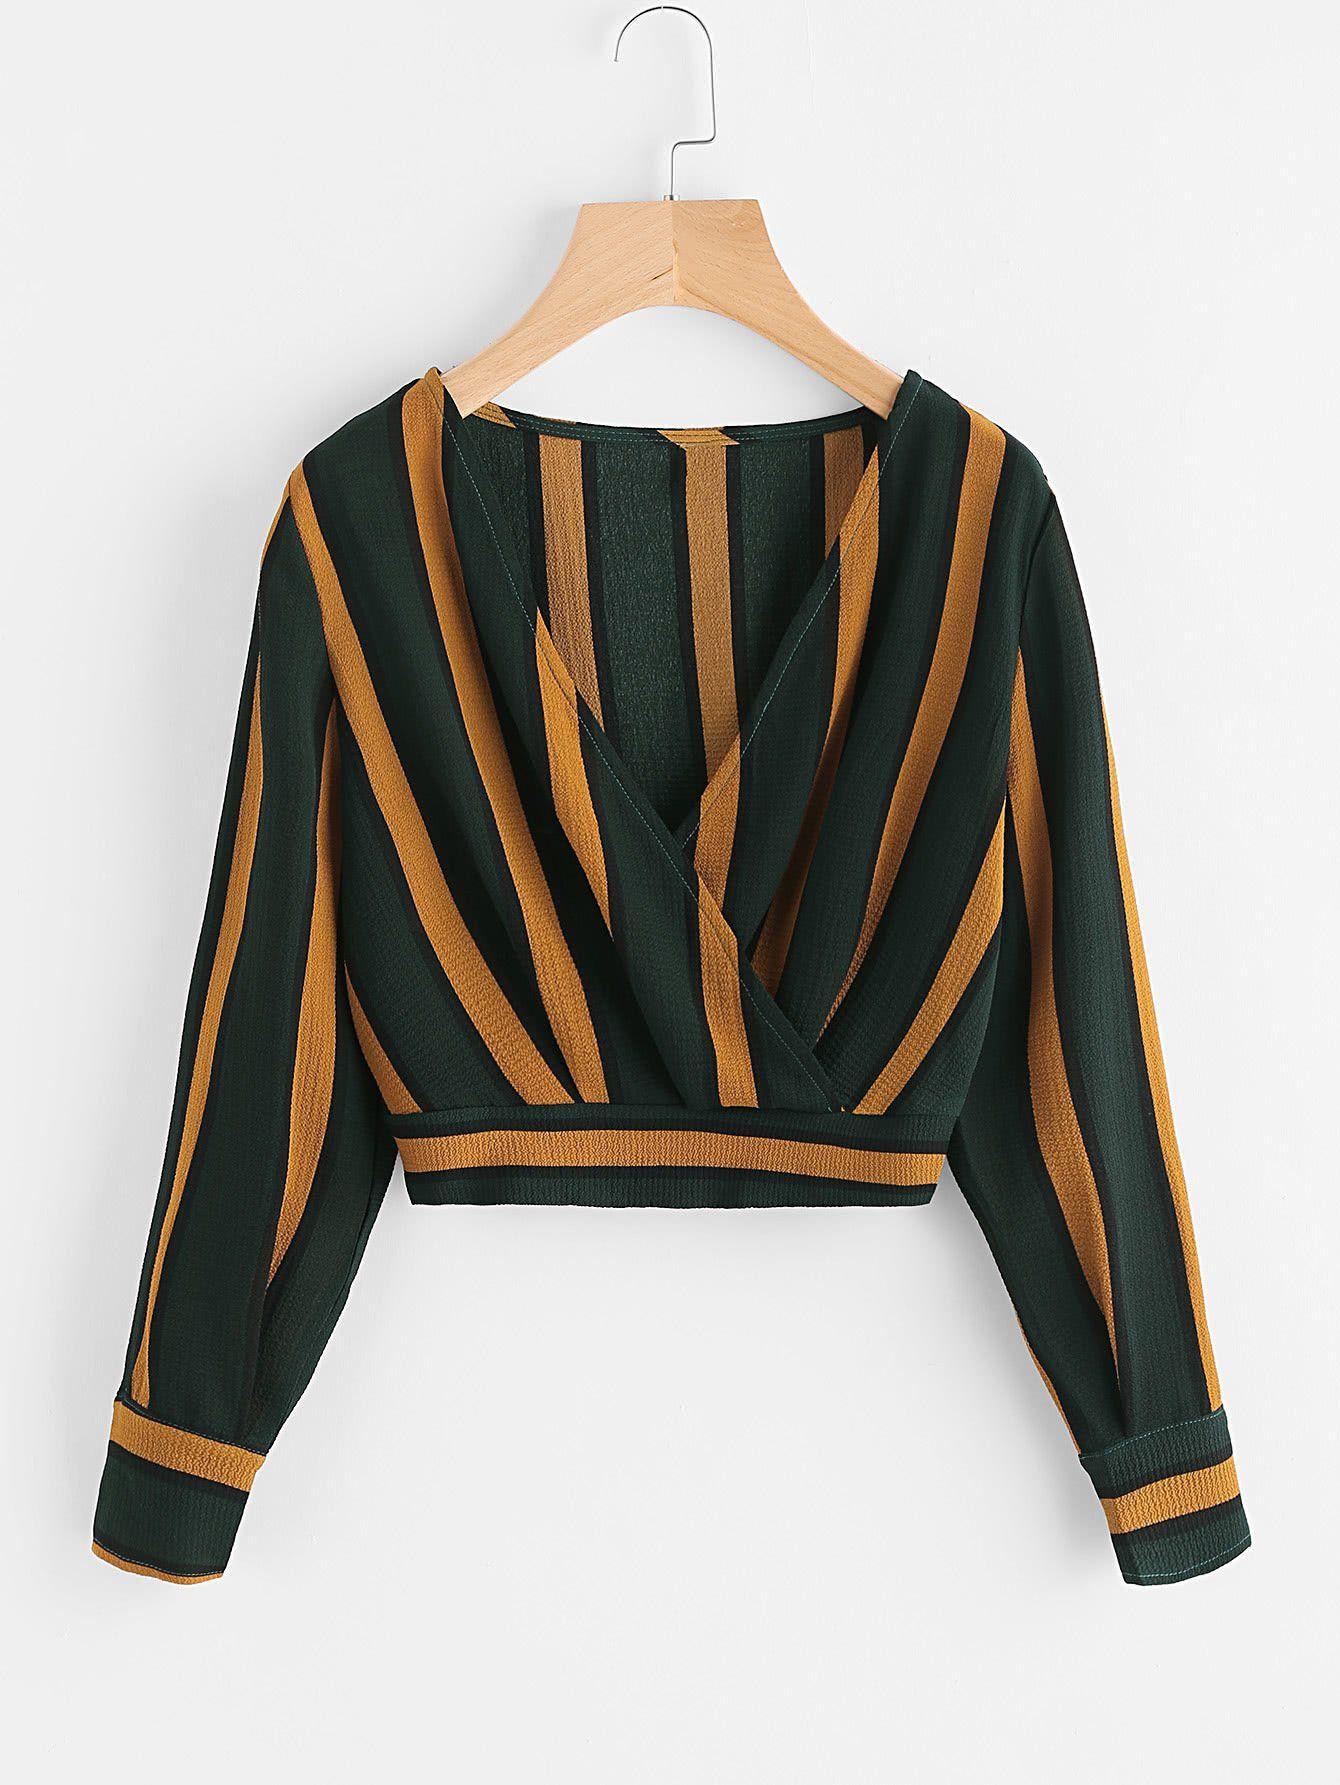 72b8aa258a Green and Yellow Striped V-Neck Surplice Crop Top. Material  Polyester  Color  Green